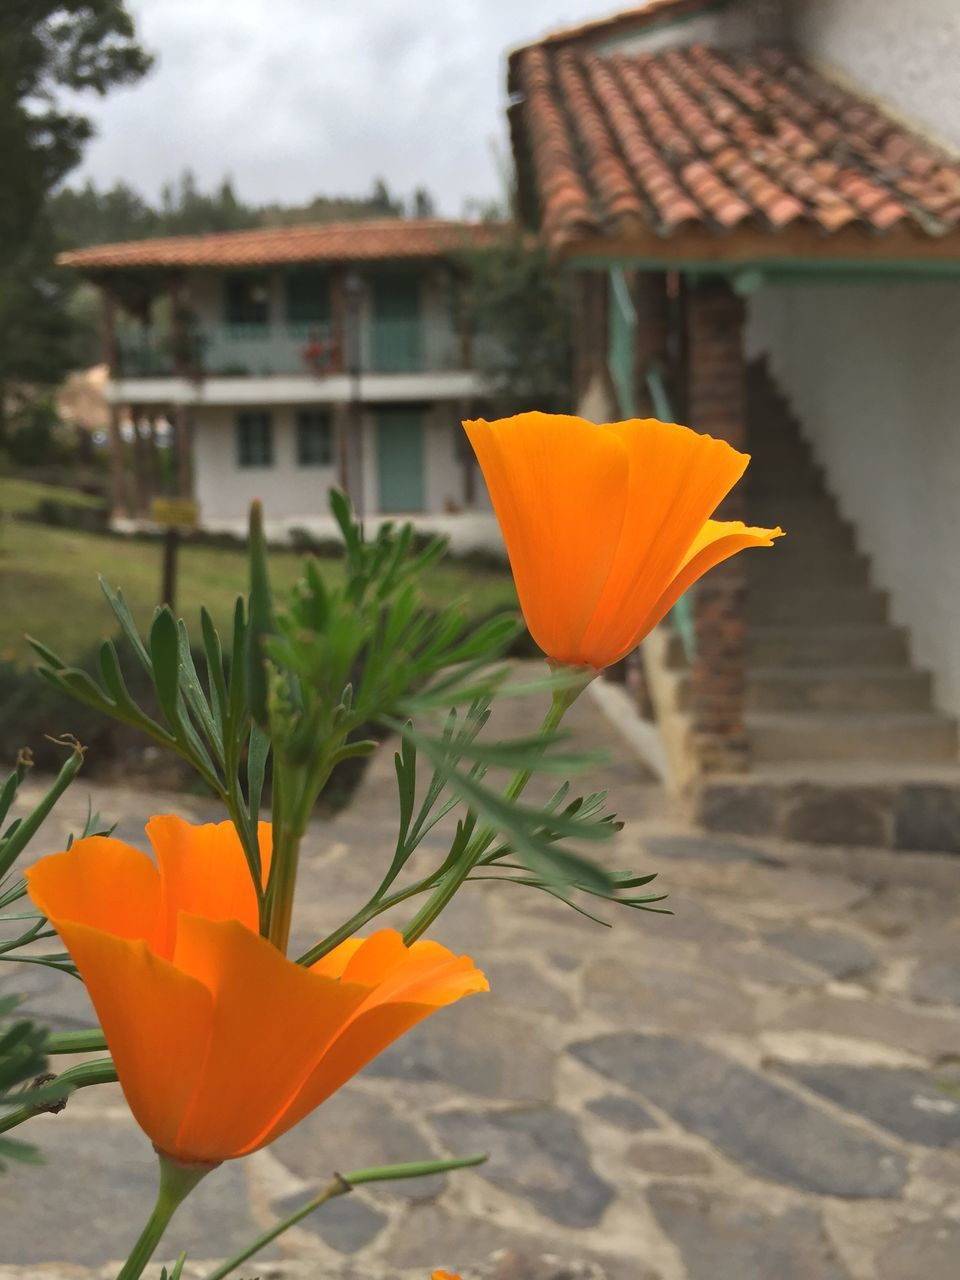 flower, petal, orange color, beauty in nature, freshness, blooming, nature, flower head, outdoors, fragility, growth, plant, focus on foreground, day, no people, yellow, close-up, building exterior, architecture, sky